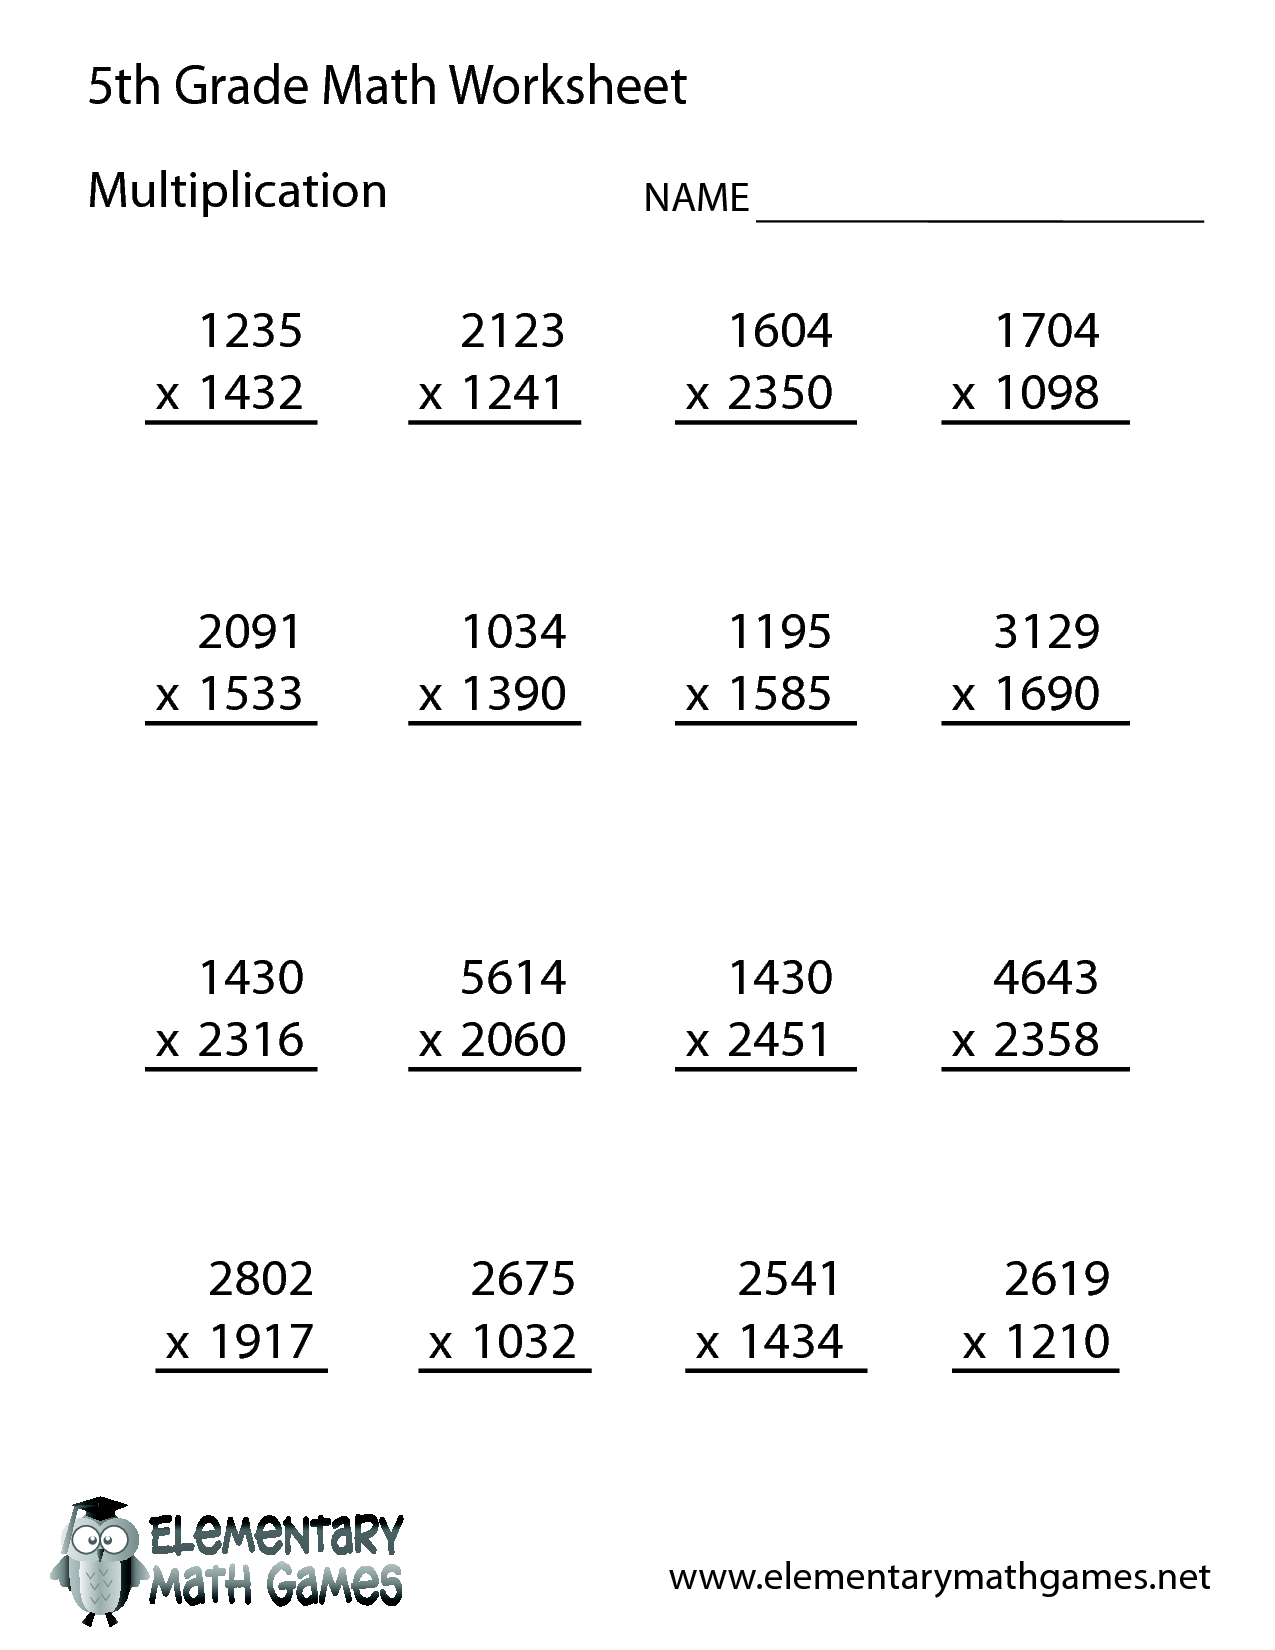 6 7 8 and 9 times tables multiplication math worksheets third – Printable Math Worksheets Grade 5